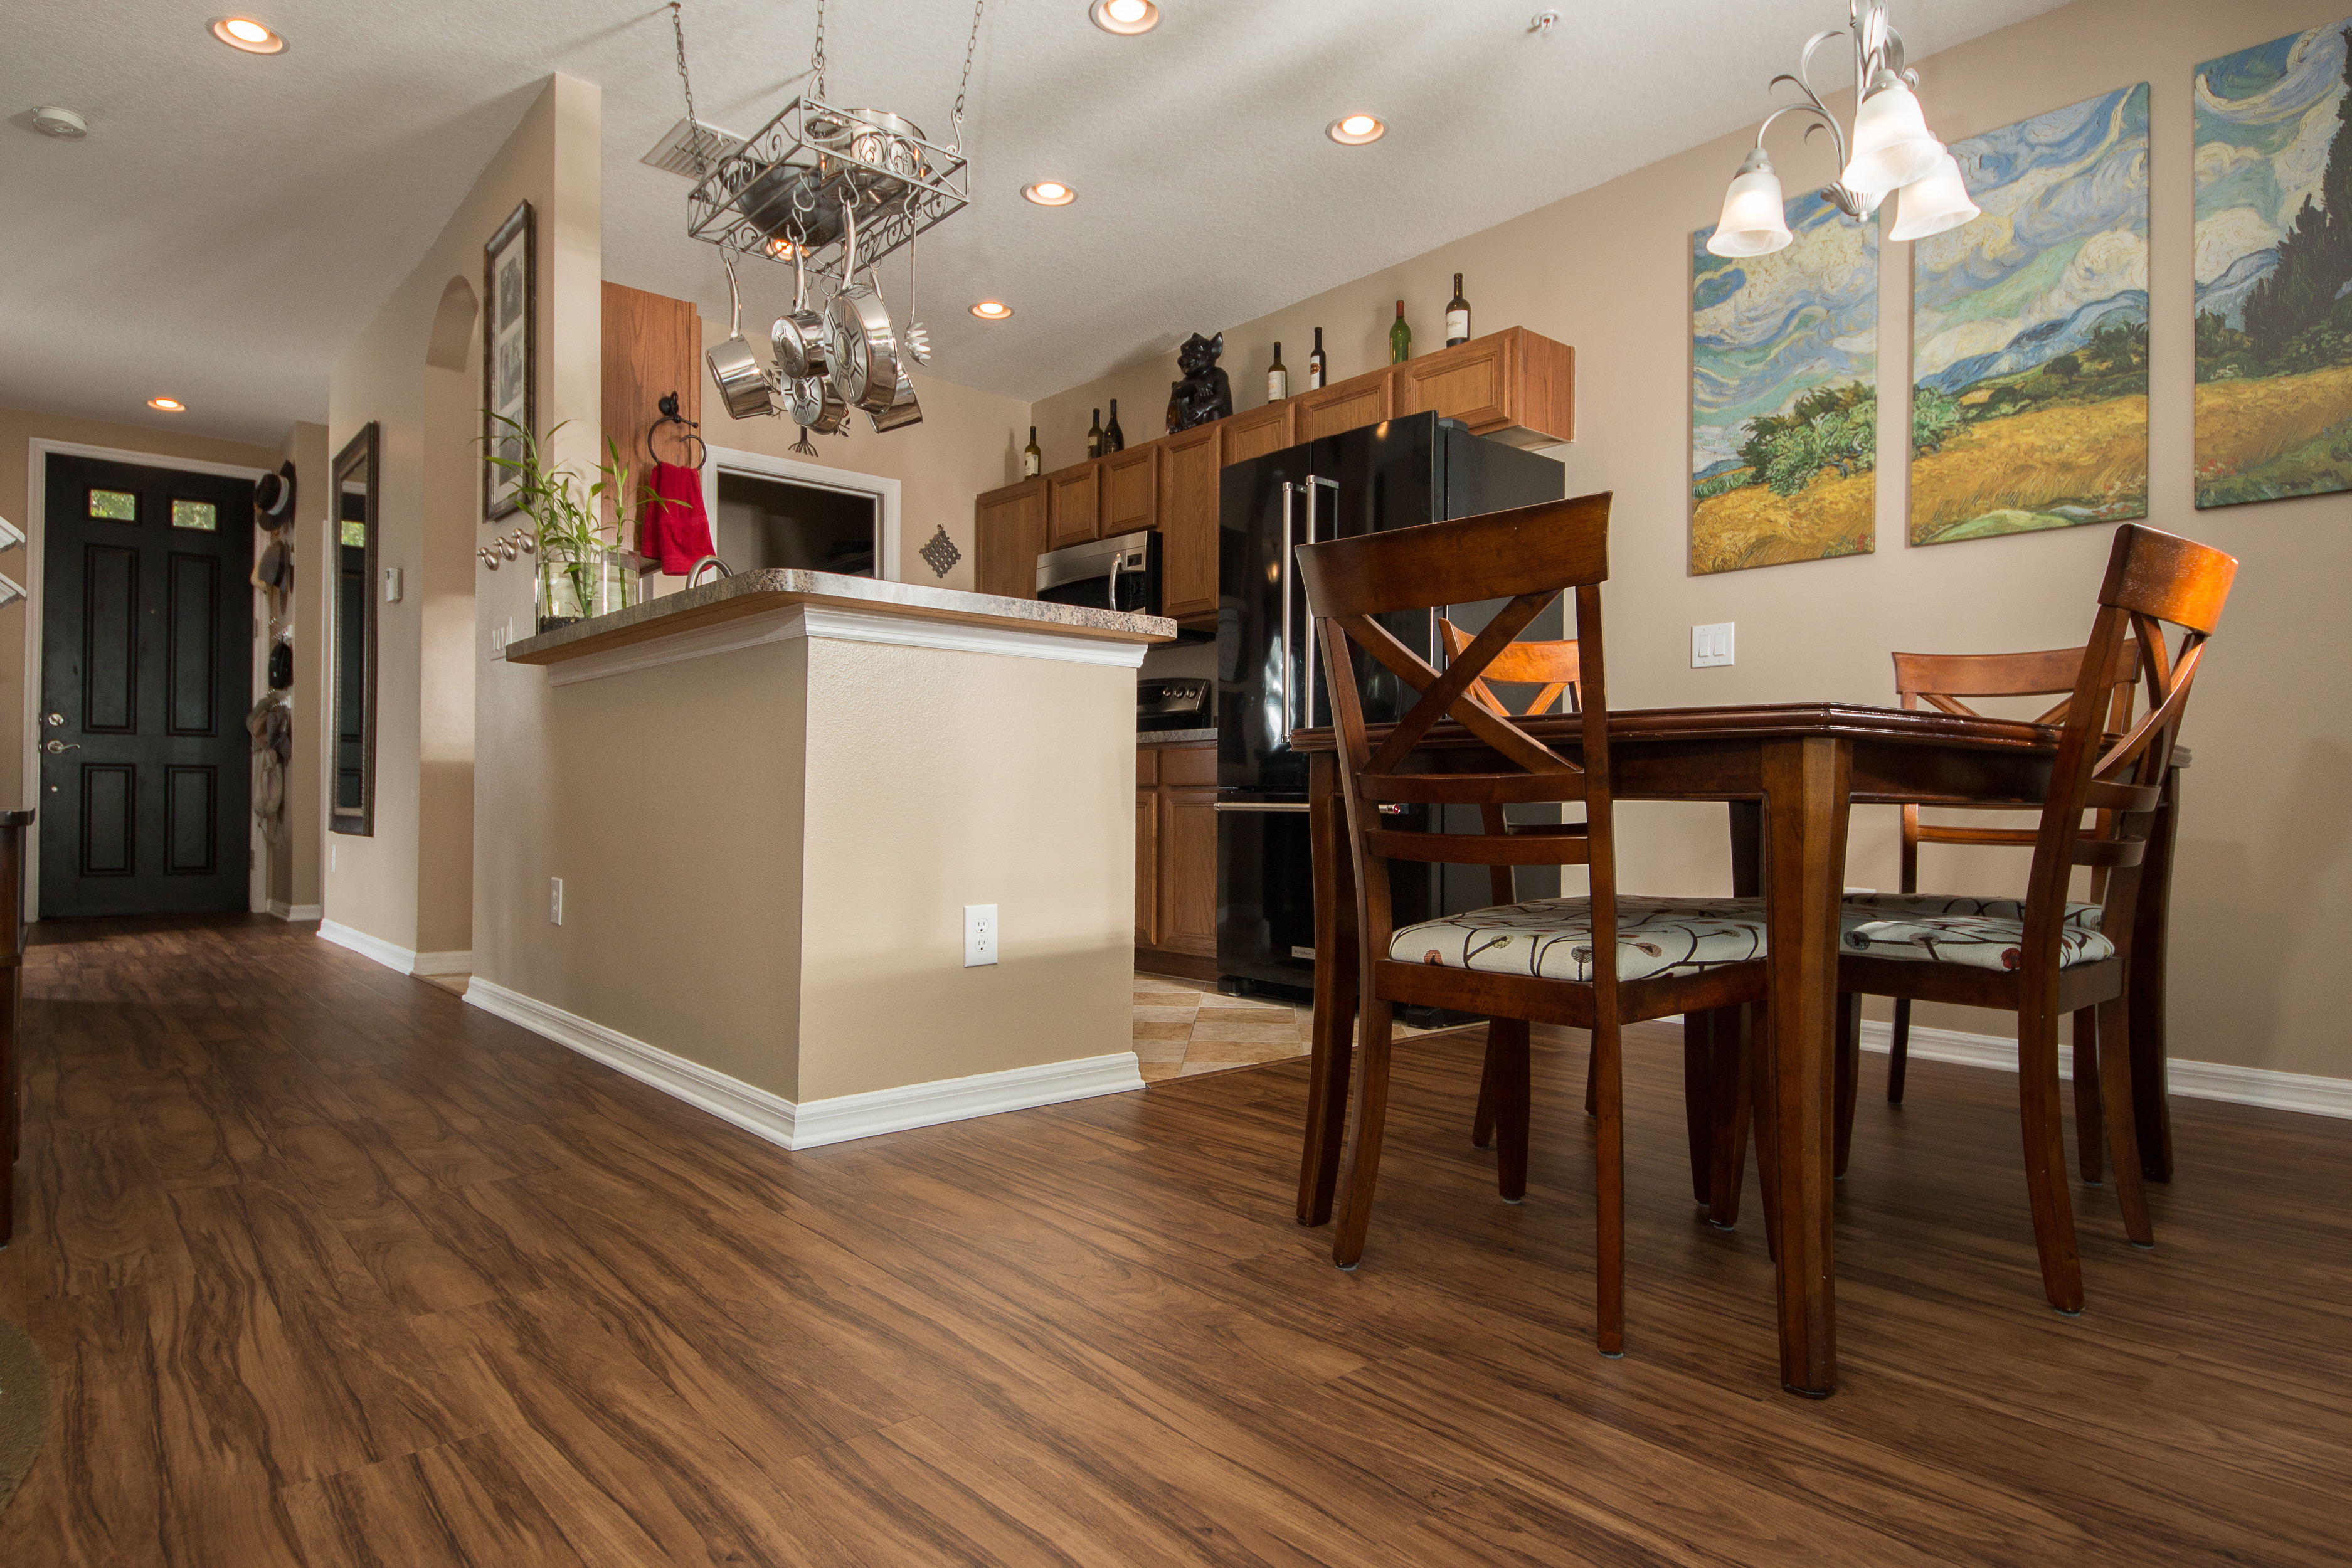 acacia walnut hardwood flooring review of wood flooring can add value to a property ability wood flooring intended for view larger image